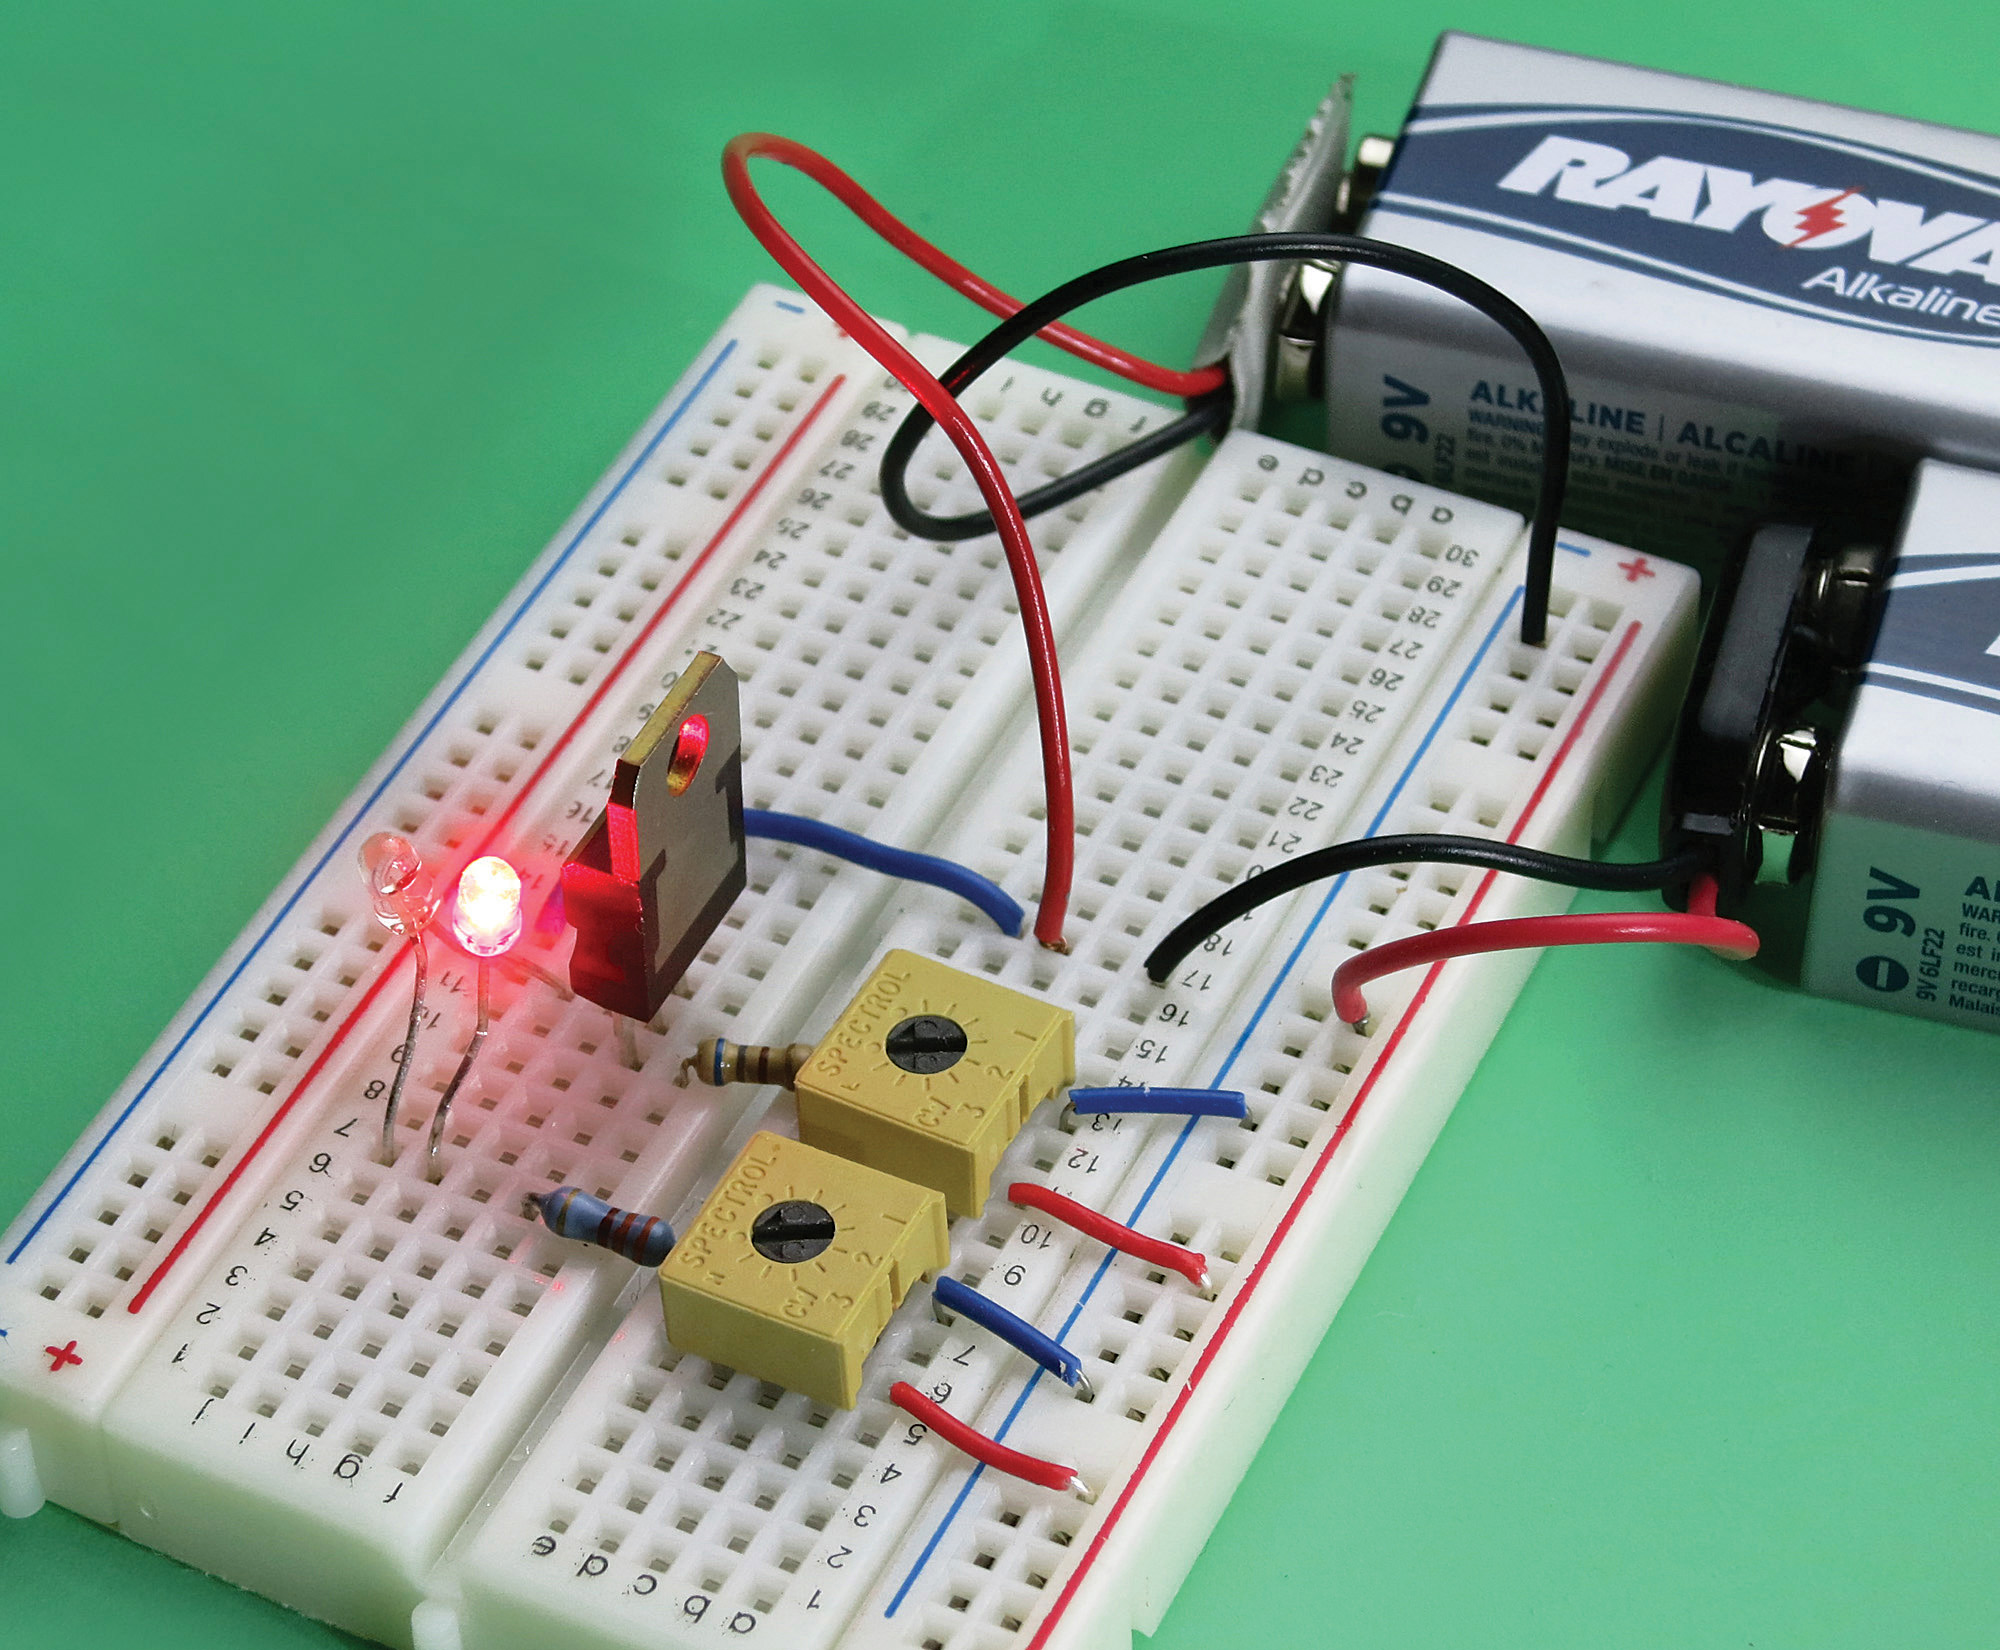 Try A Triac Make Circuits Projects 10 The Breadboarded Layout